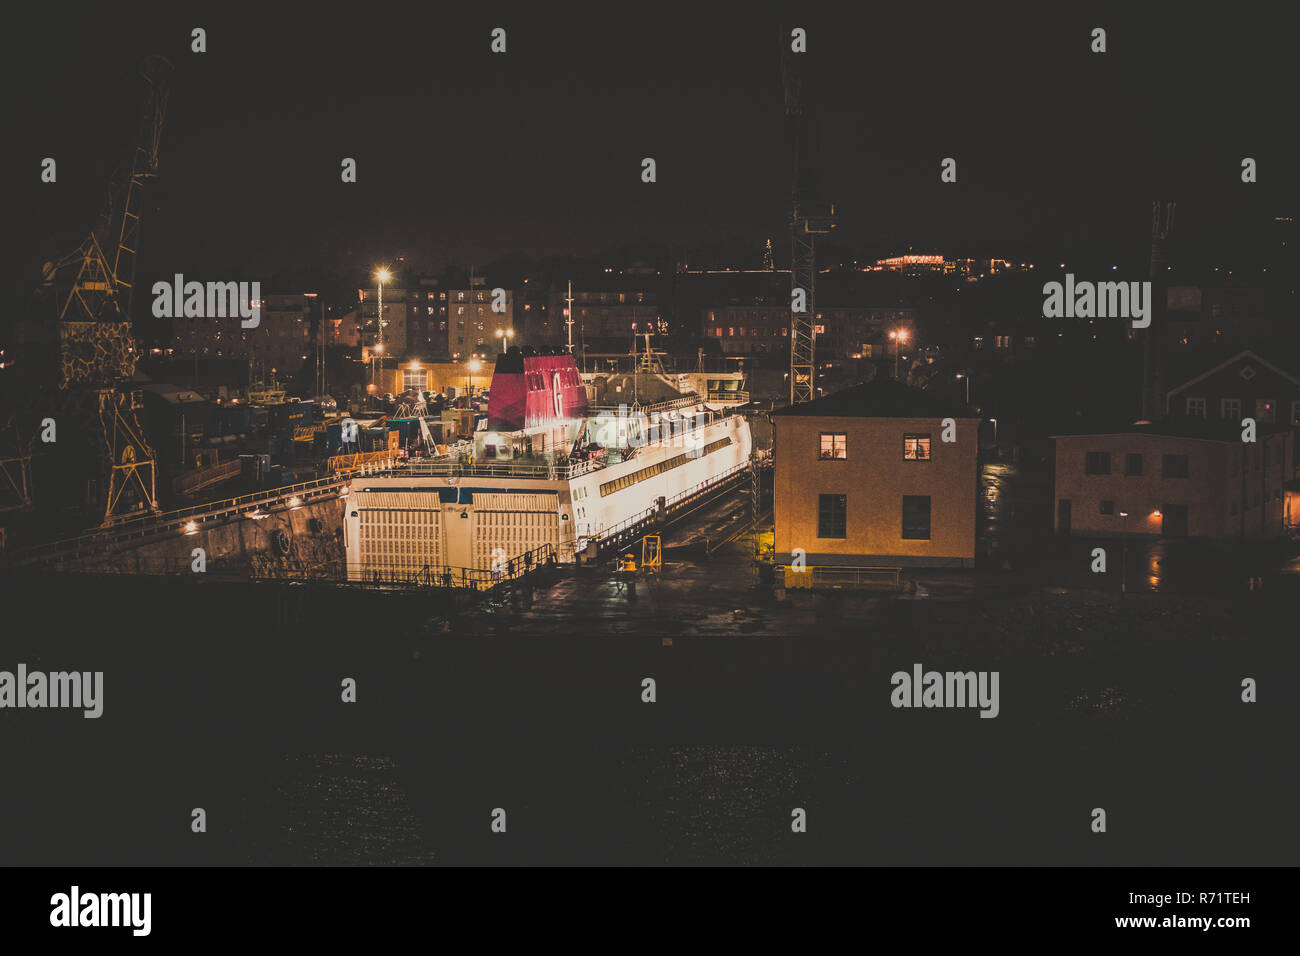 Editorial 11.30.2018 Stockholm Sweden, car ferry in the dry dock for yearly maintenance, seen in the early morning before sunrise - Stock Image